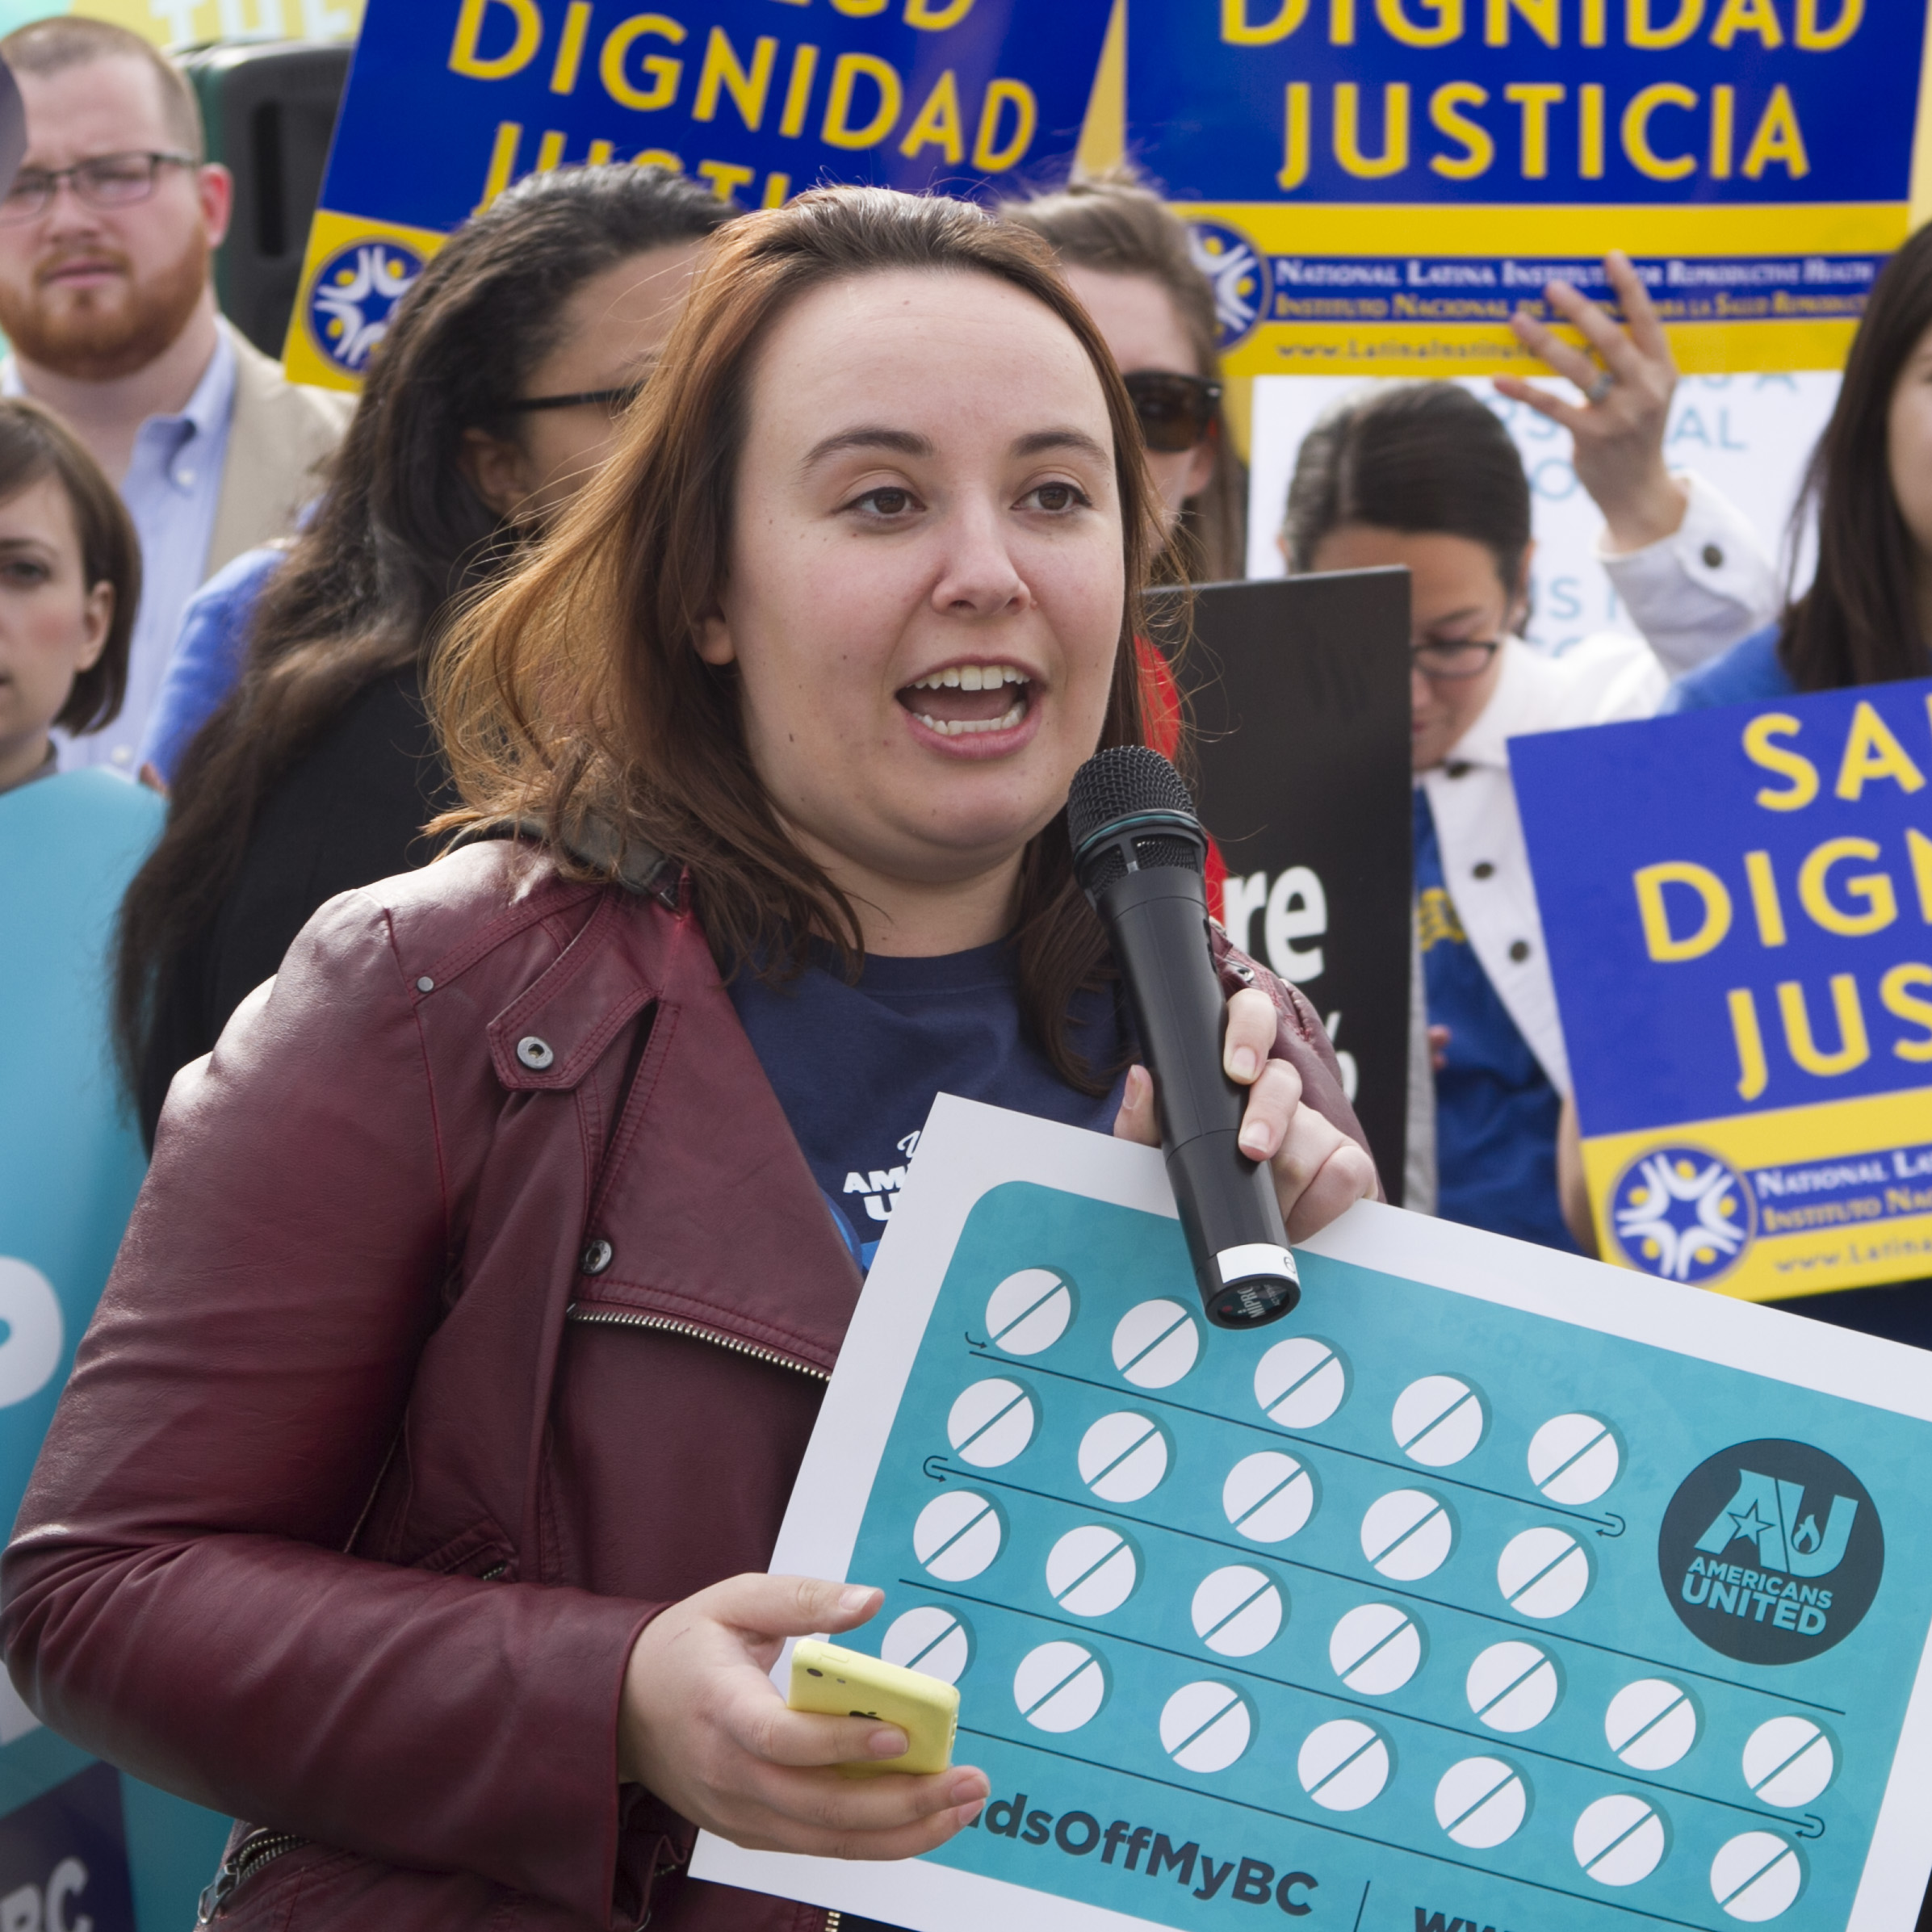 Allison Tanner at #HandsOffMyBC rally in front of the Supreme Court